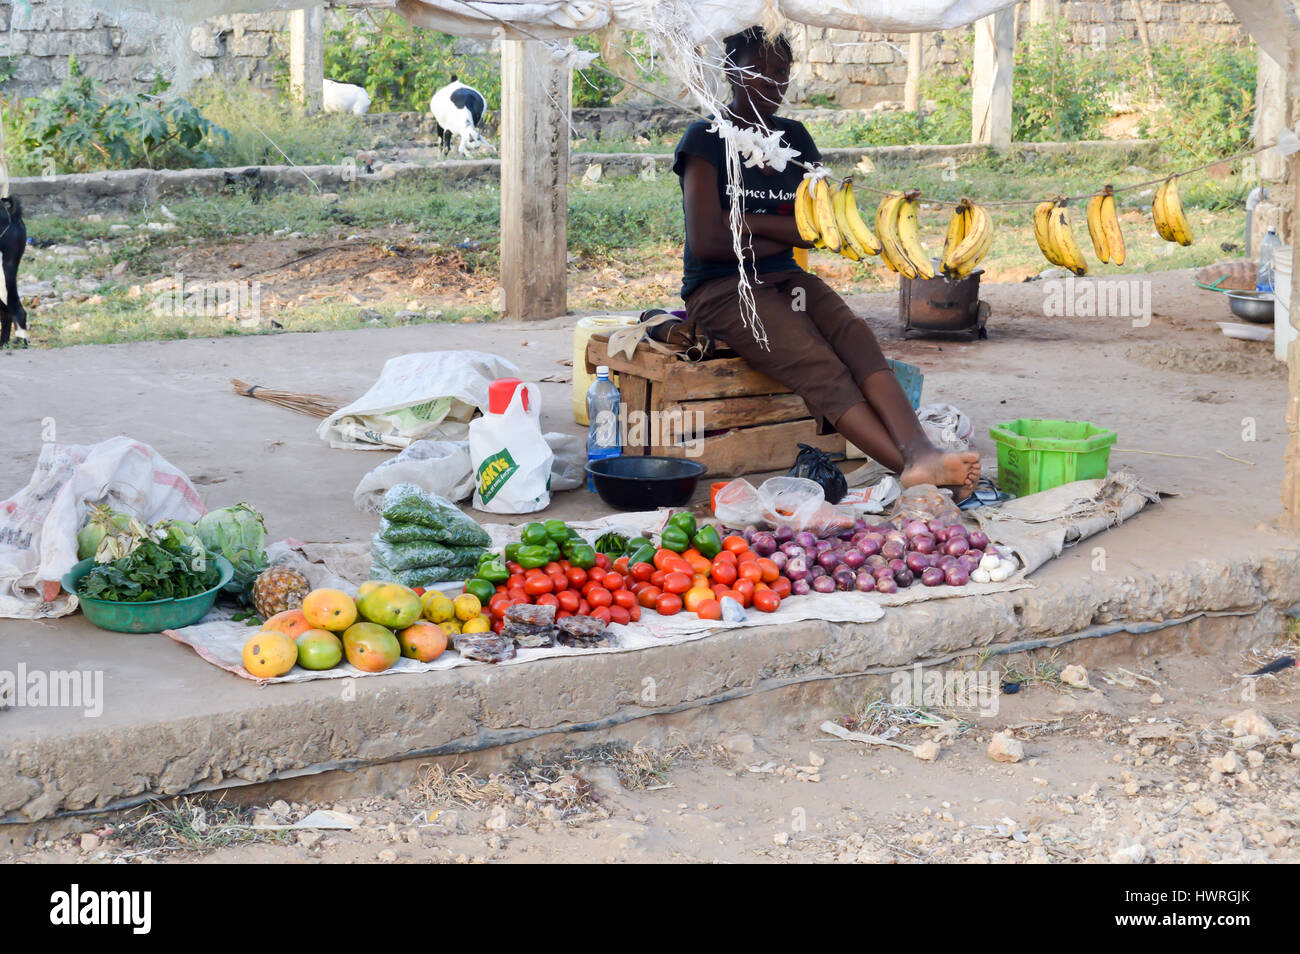 Selling fruit and vegetables under an old bache in the city